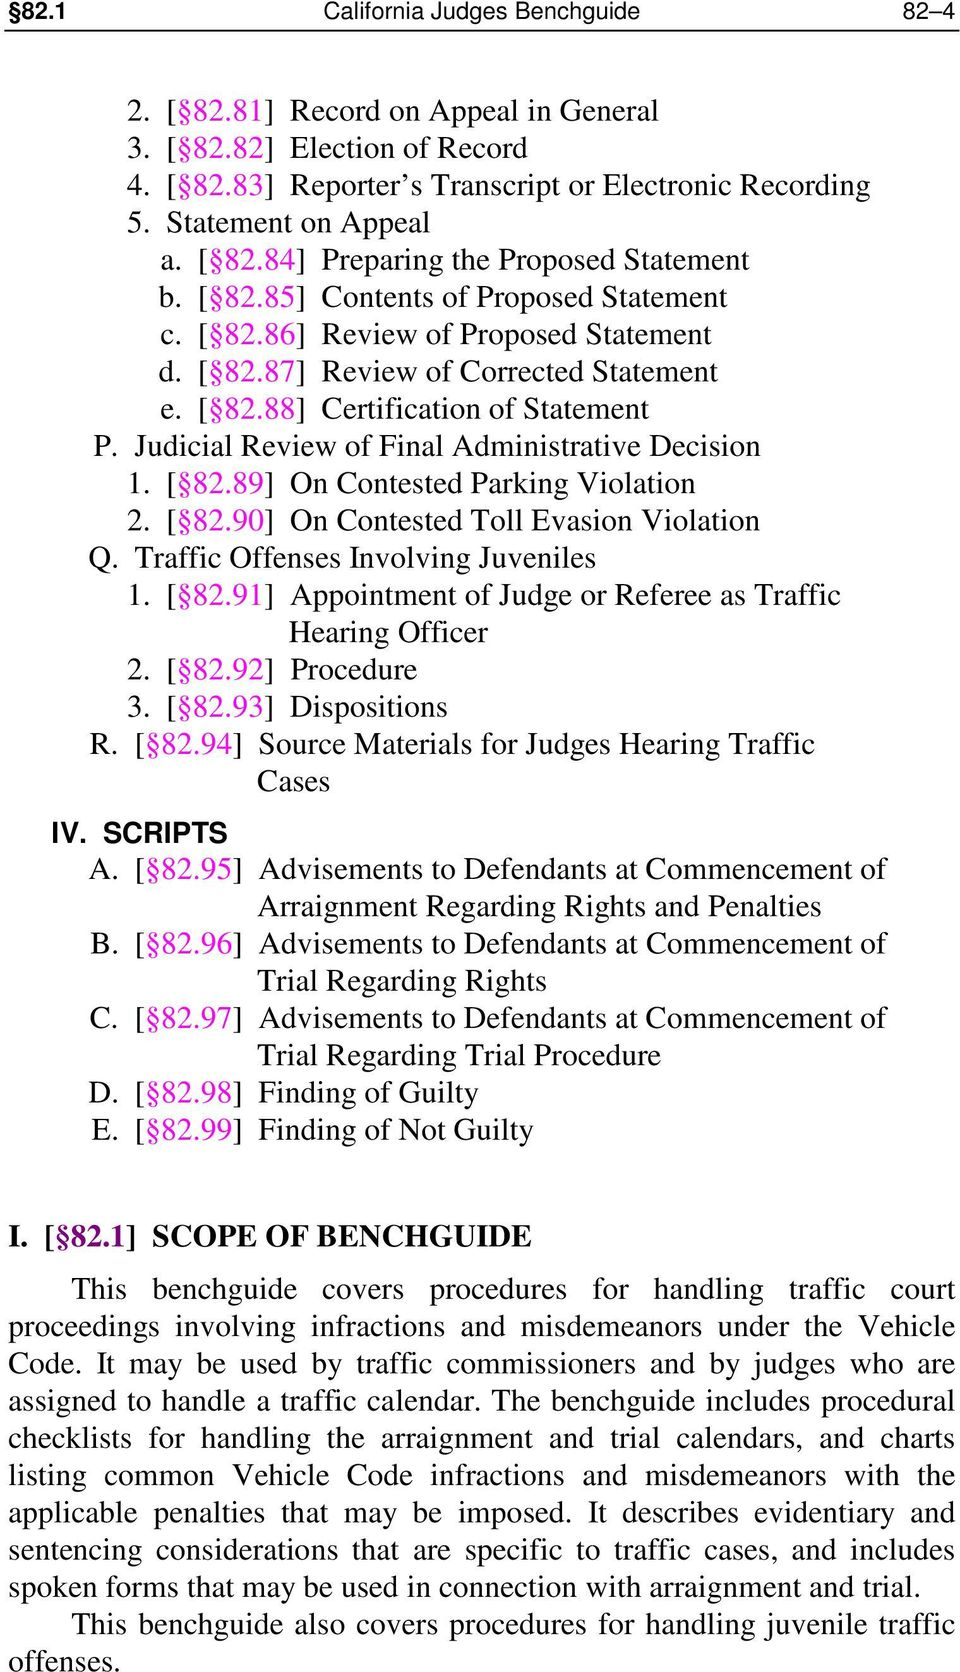 Judicial Review of Final Administrative Decision 1. [ 82.89] On Contested Parking Violation 2. [ 82.90] On Contested Toll Evasion Violation Q. Traffic Offenses Involving Juveniles 1. [ 82.91] Appointment of Judge or Referee as Traffic Hearing Officer 2.